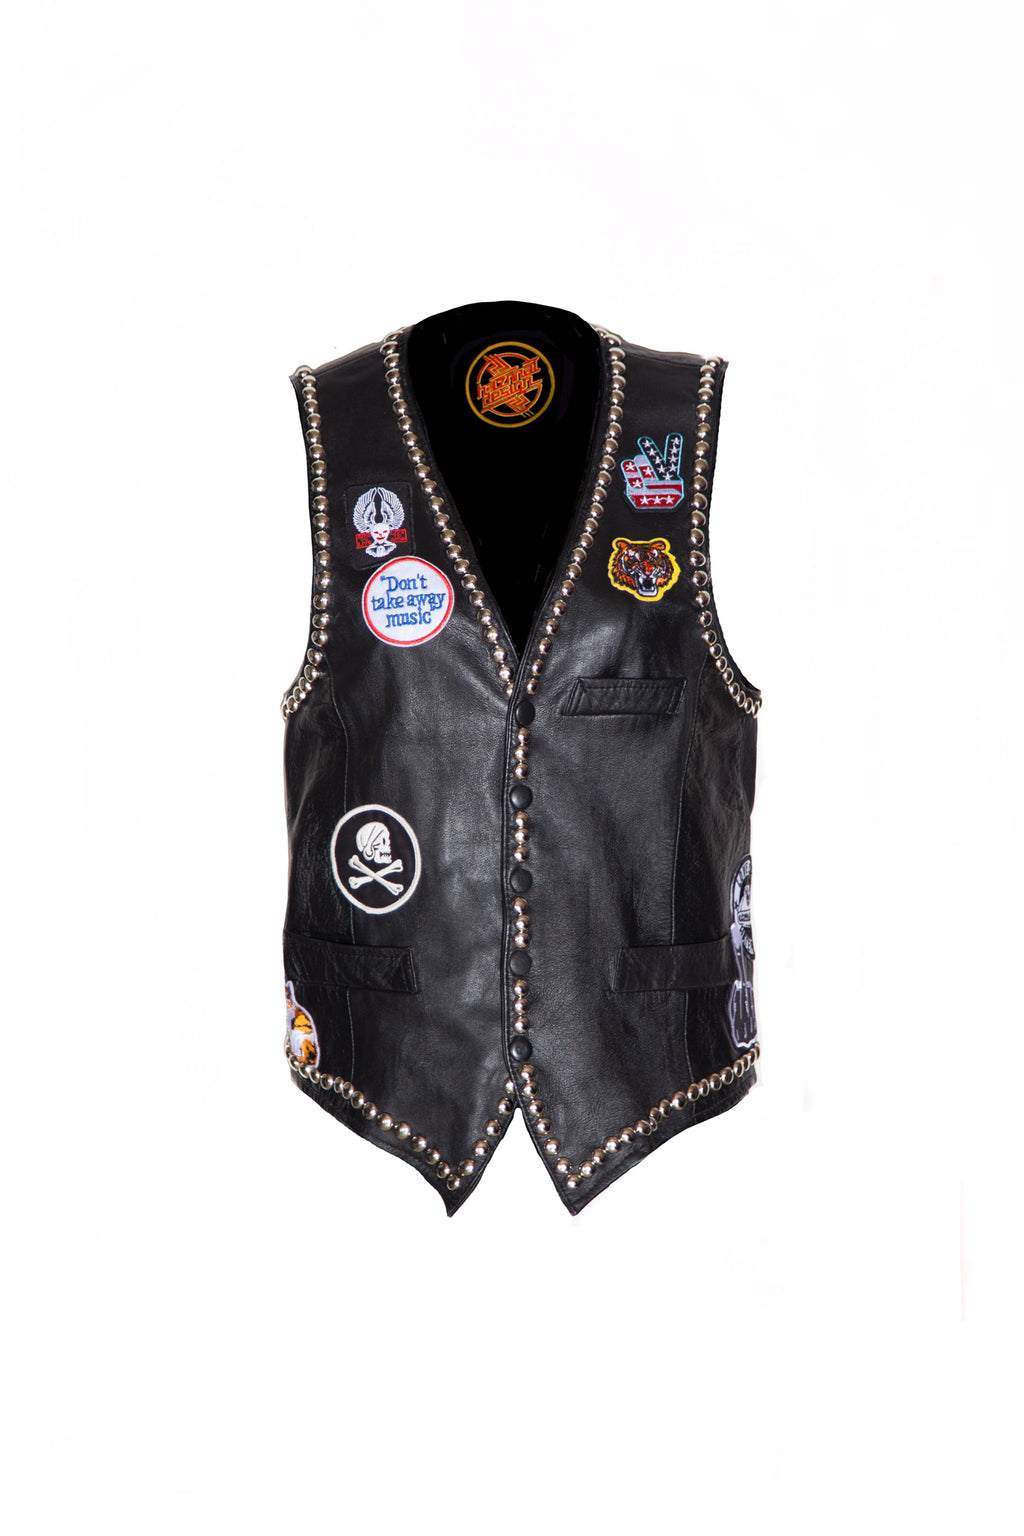 Wheels of Steel Leather Vest